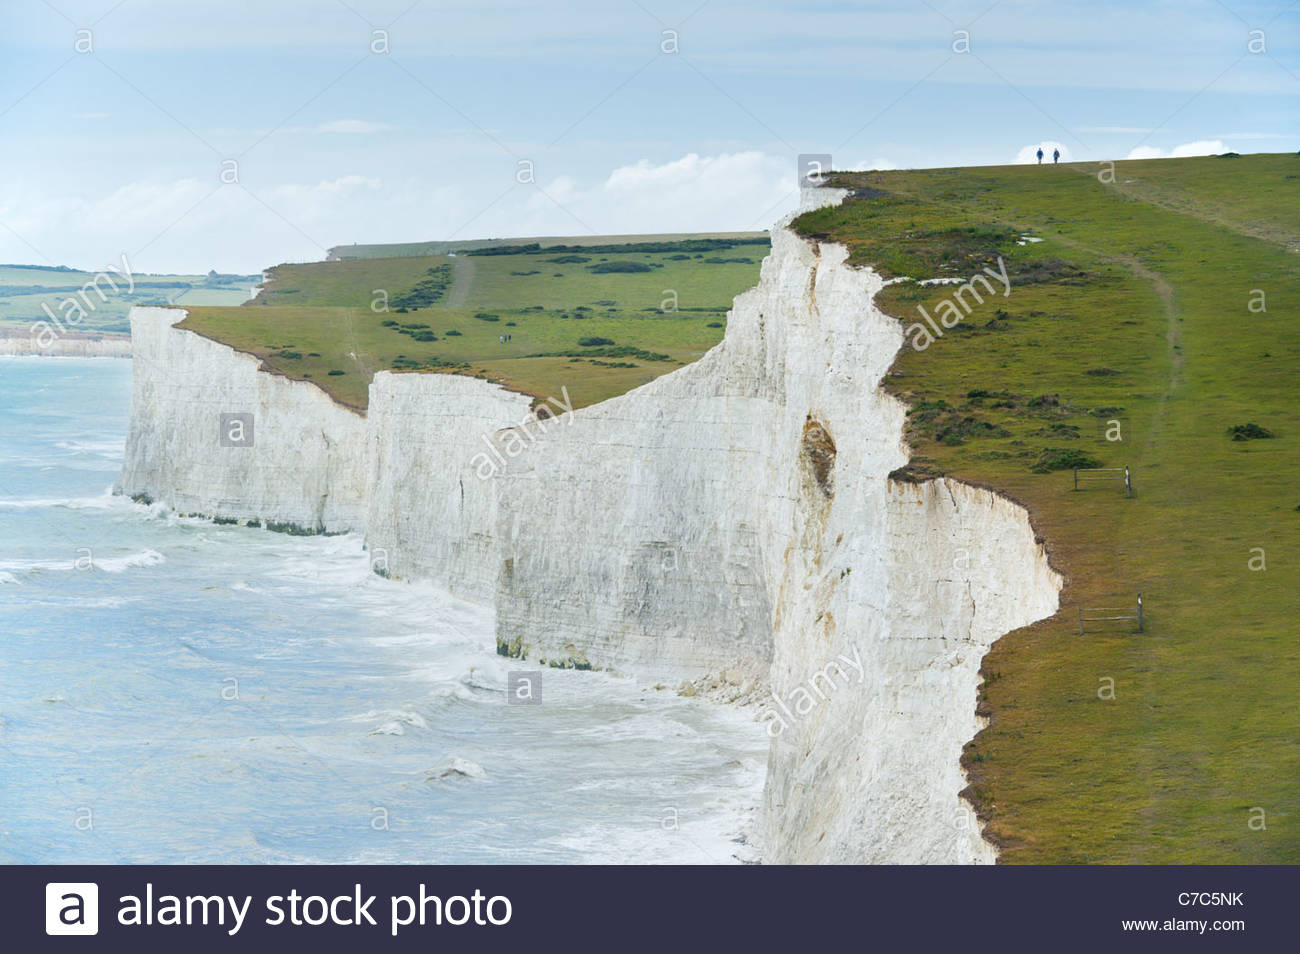 Walkers above the Seven Sisters cliffs, South Downs National Park, East Sussex, England. - Stock Image